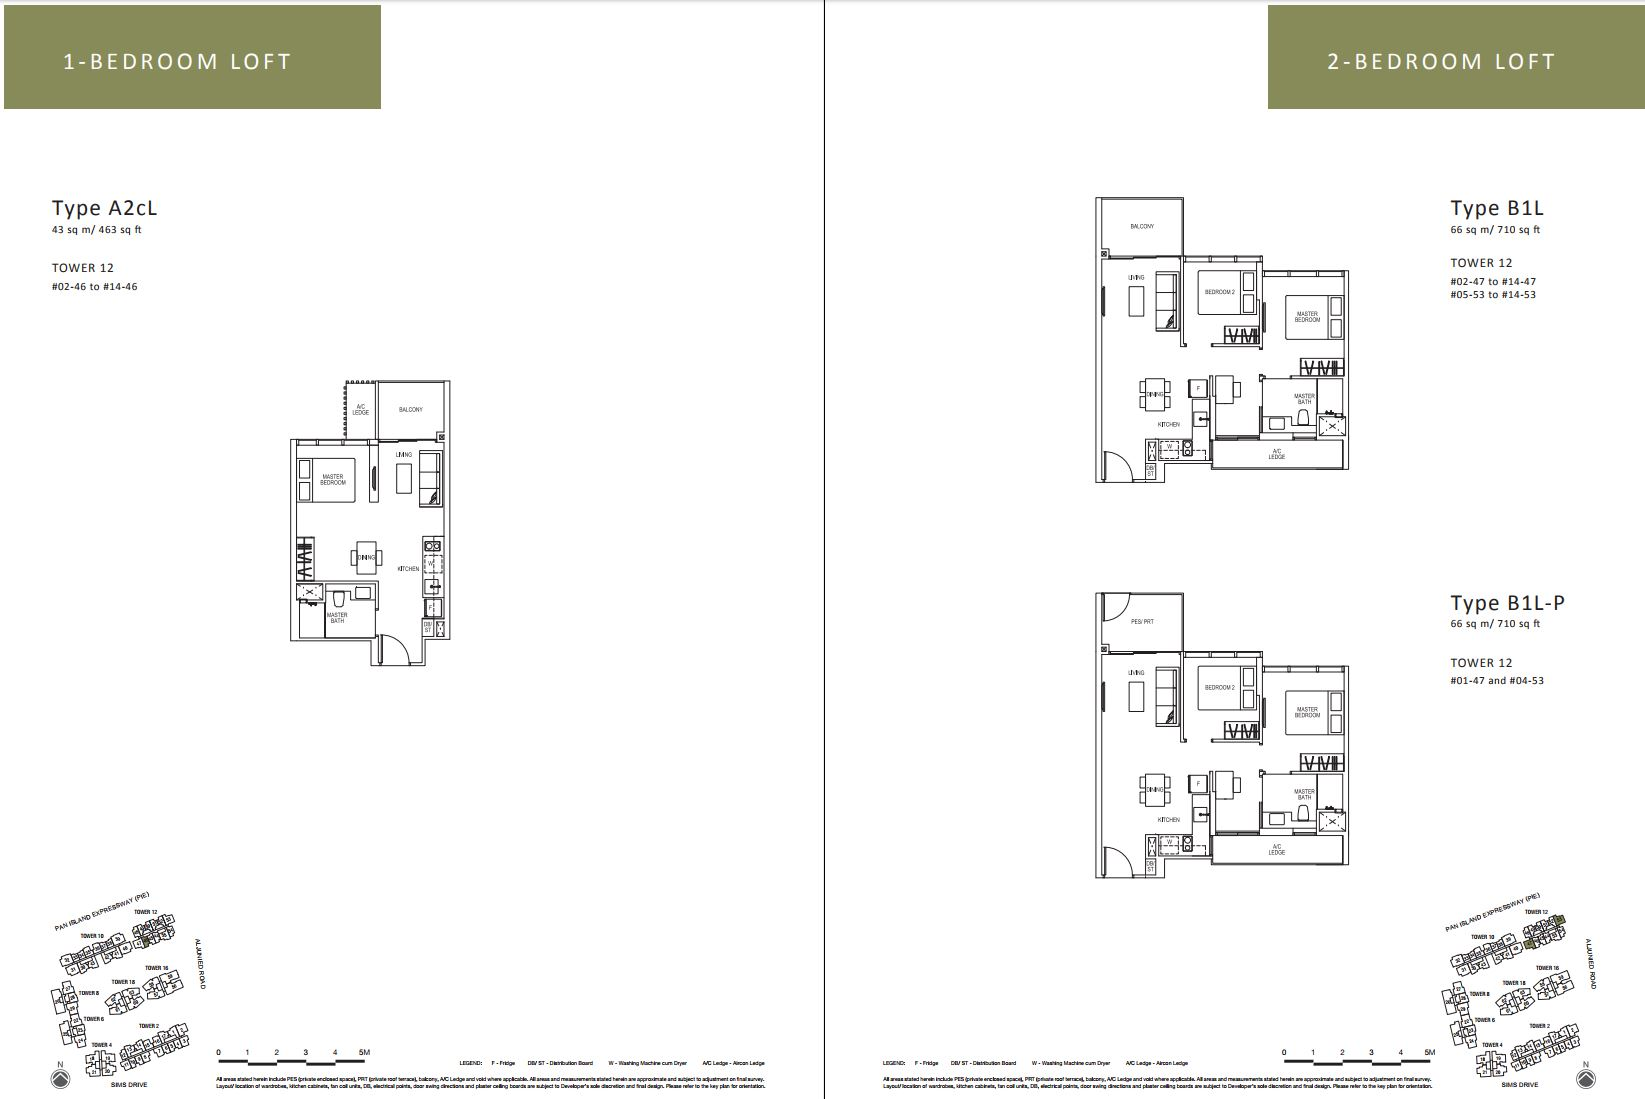 Sims Urban Oasis FloorPlan - 1 & 2 Bedroom Loft